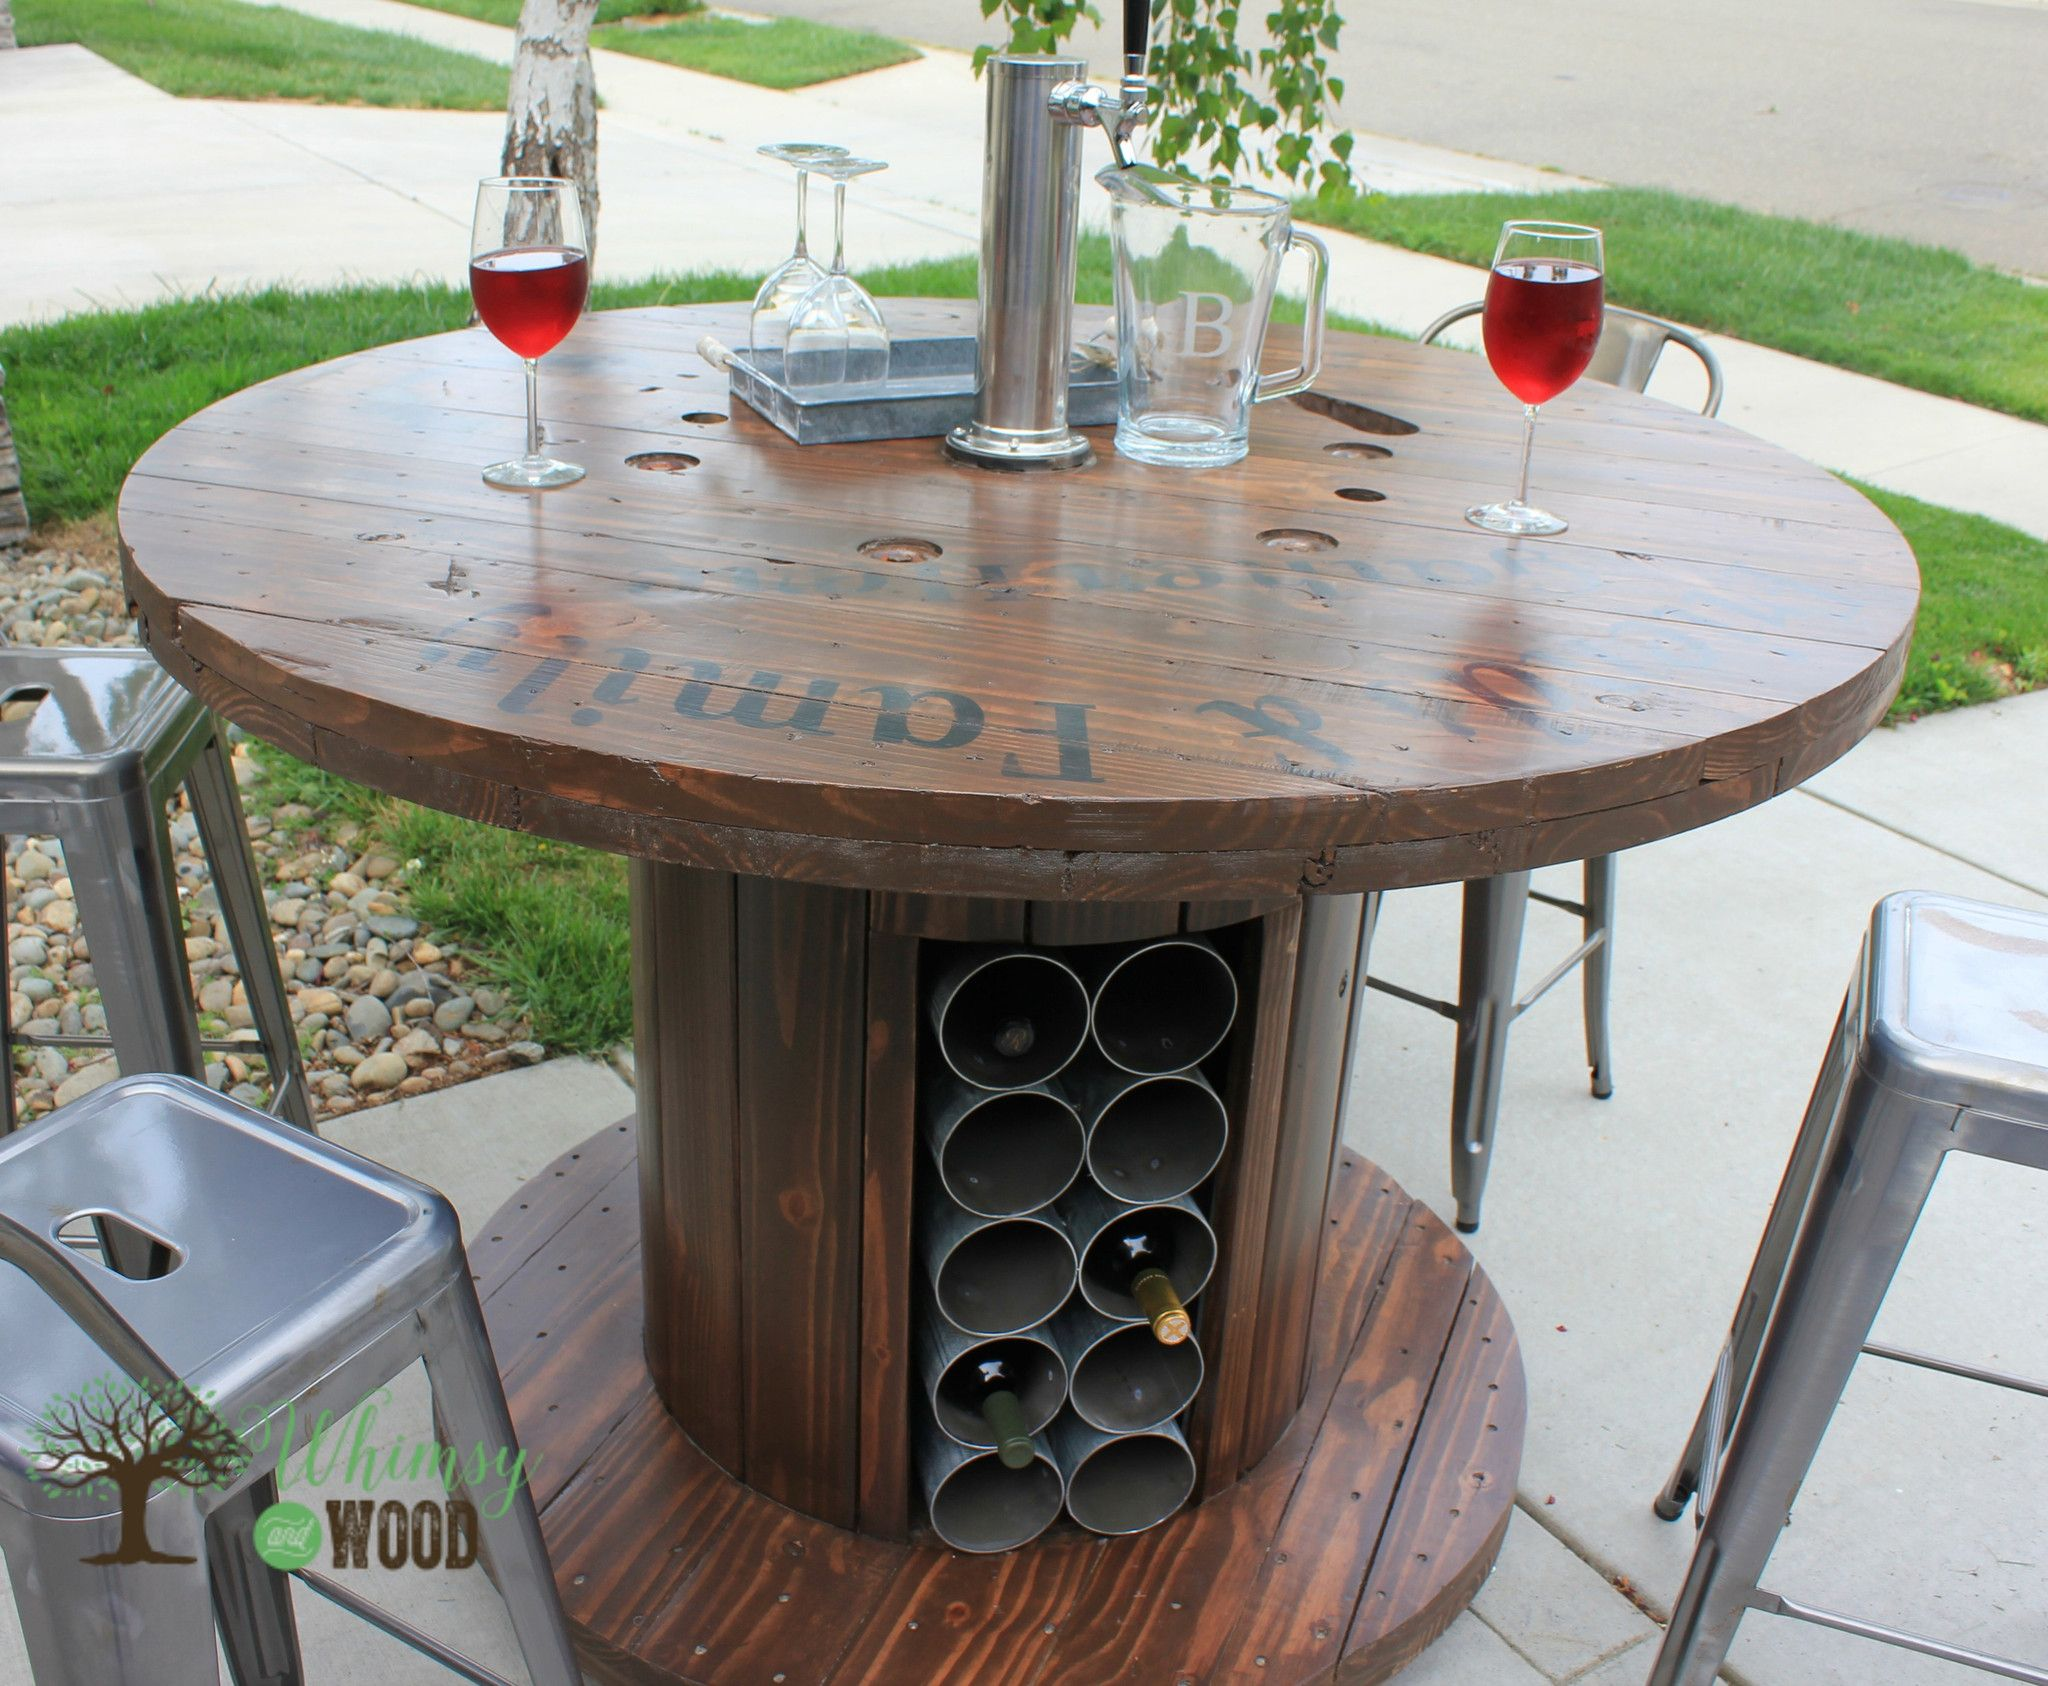 How To Make This Cable Spool Patio Set  Artistica. Patio Builders Leeds. Patio Designs Do It Yourself. Decorating Small Patio Ideas. Diy Metal Patio Awnings. Patio Chairs That Swivel. Decorating Patio Deck. Outdoor Patio Lights Amazon. Patio World Sydney